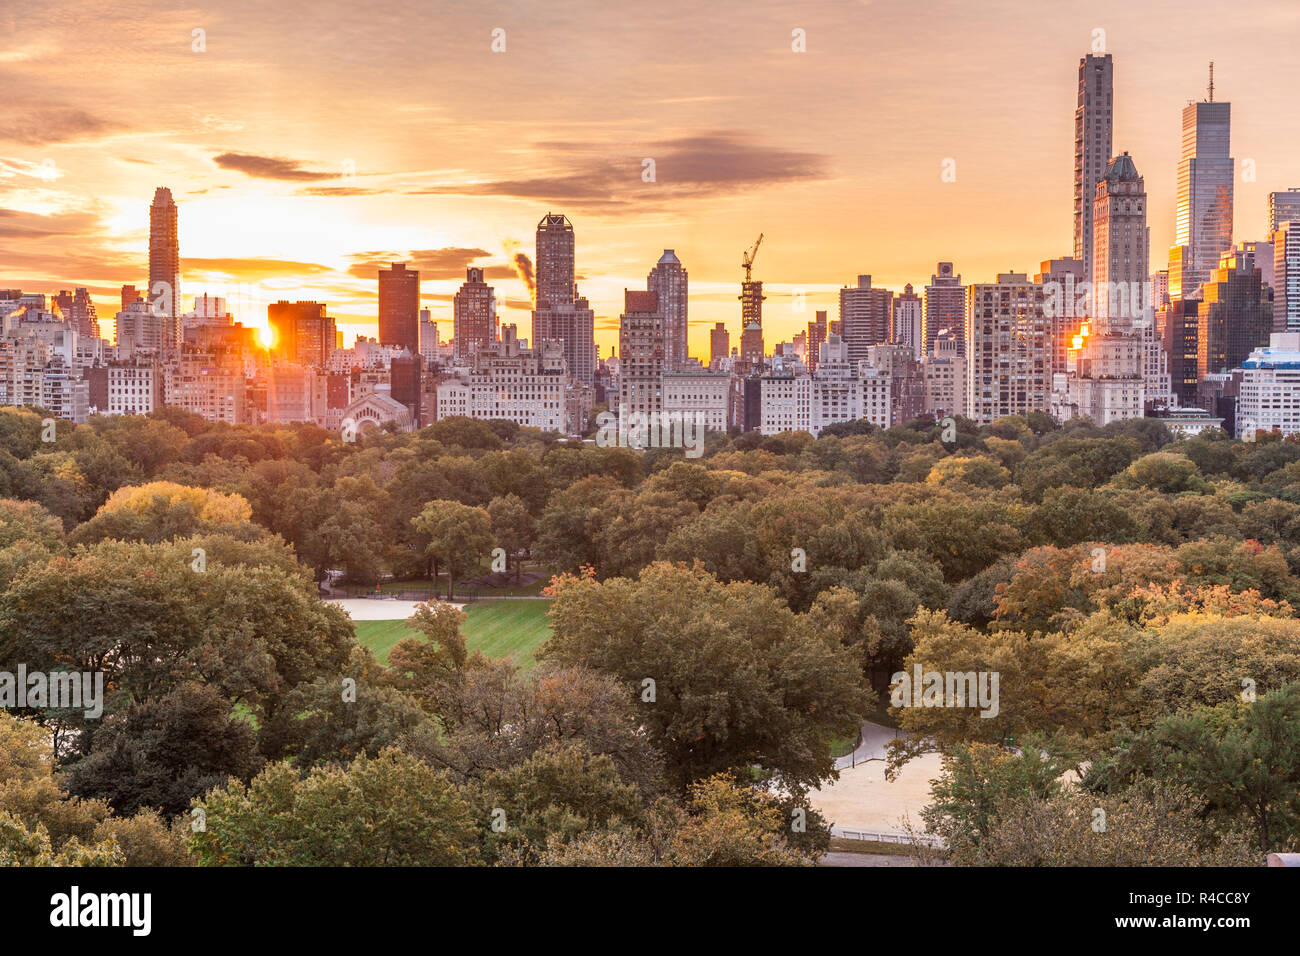 Sunrise Over Central Park New York City United States Of America Stock Photo Alamy